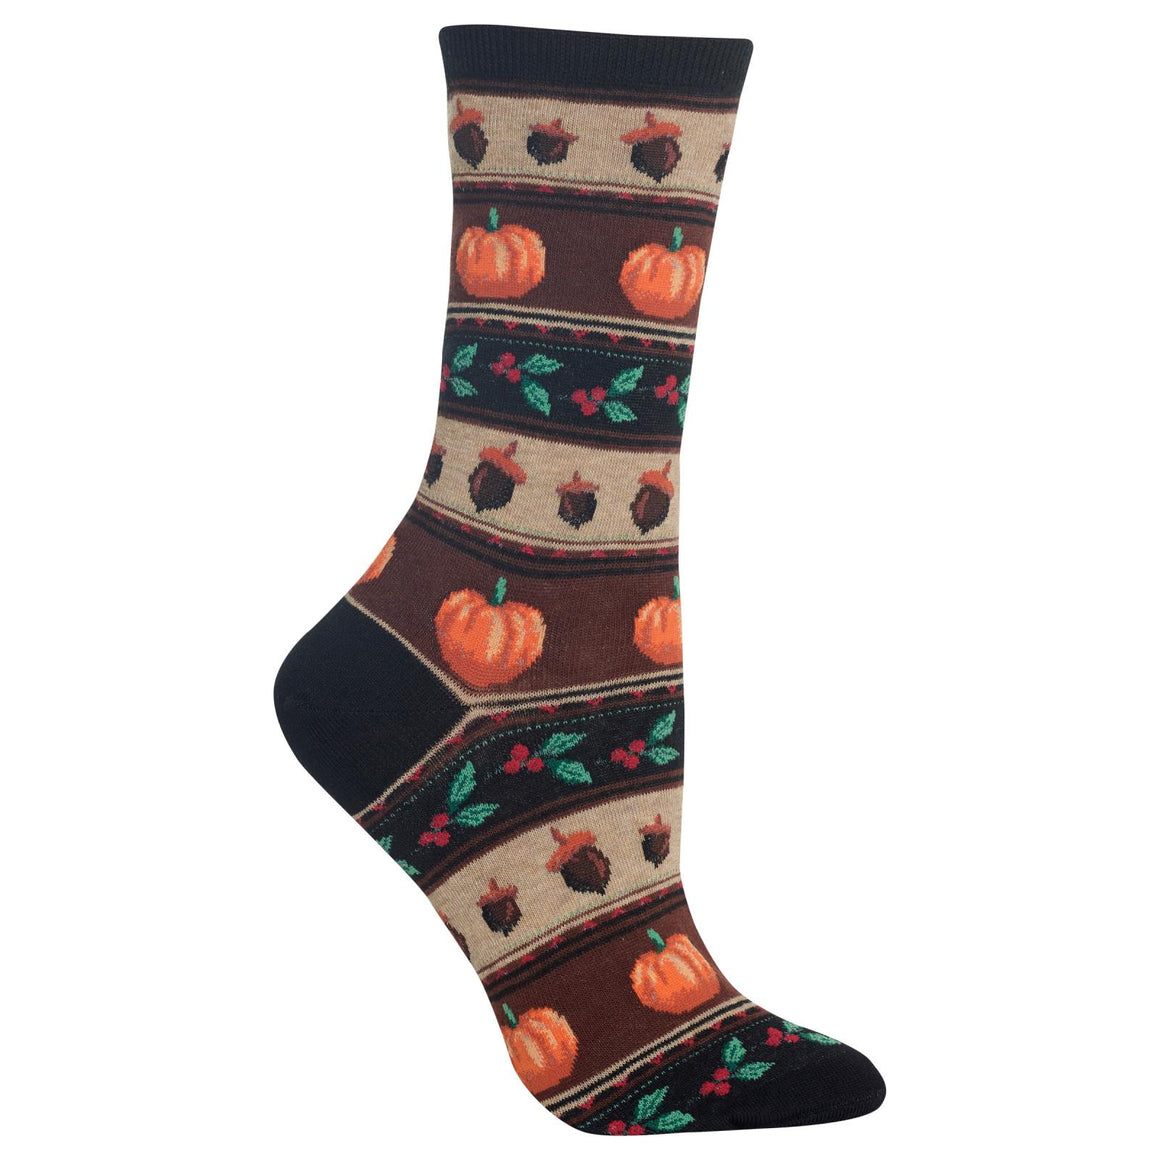 Women's Thanksgiving Fairisle Crew Socks - XEJRA